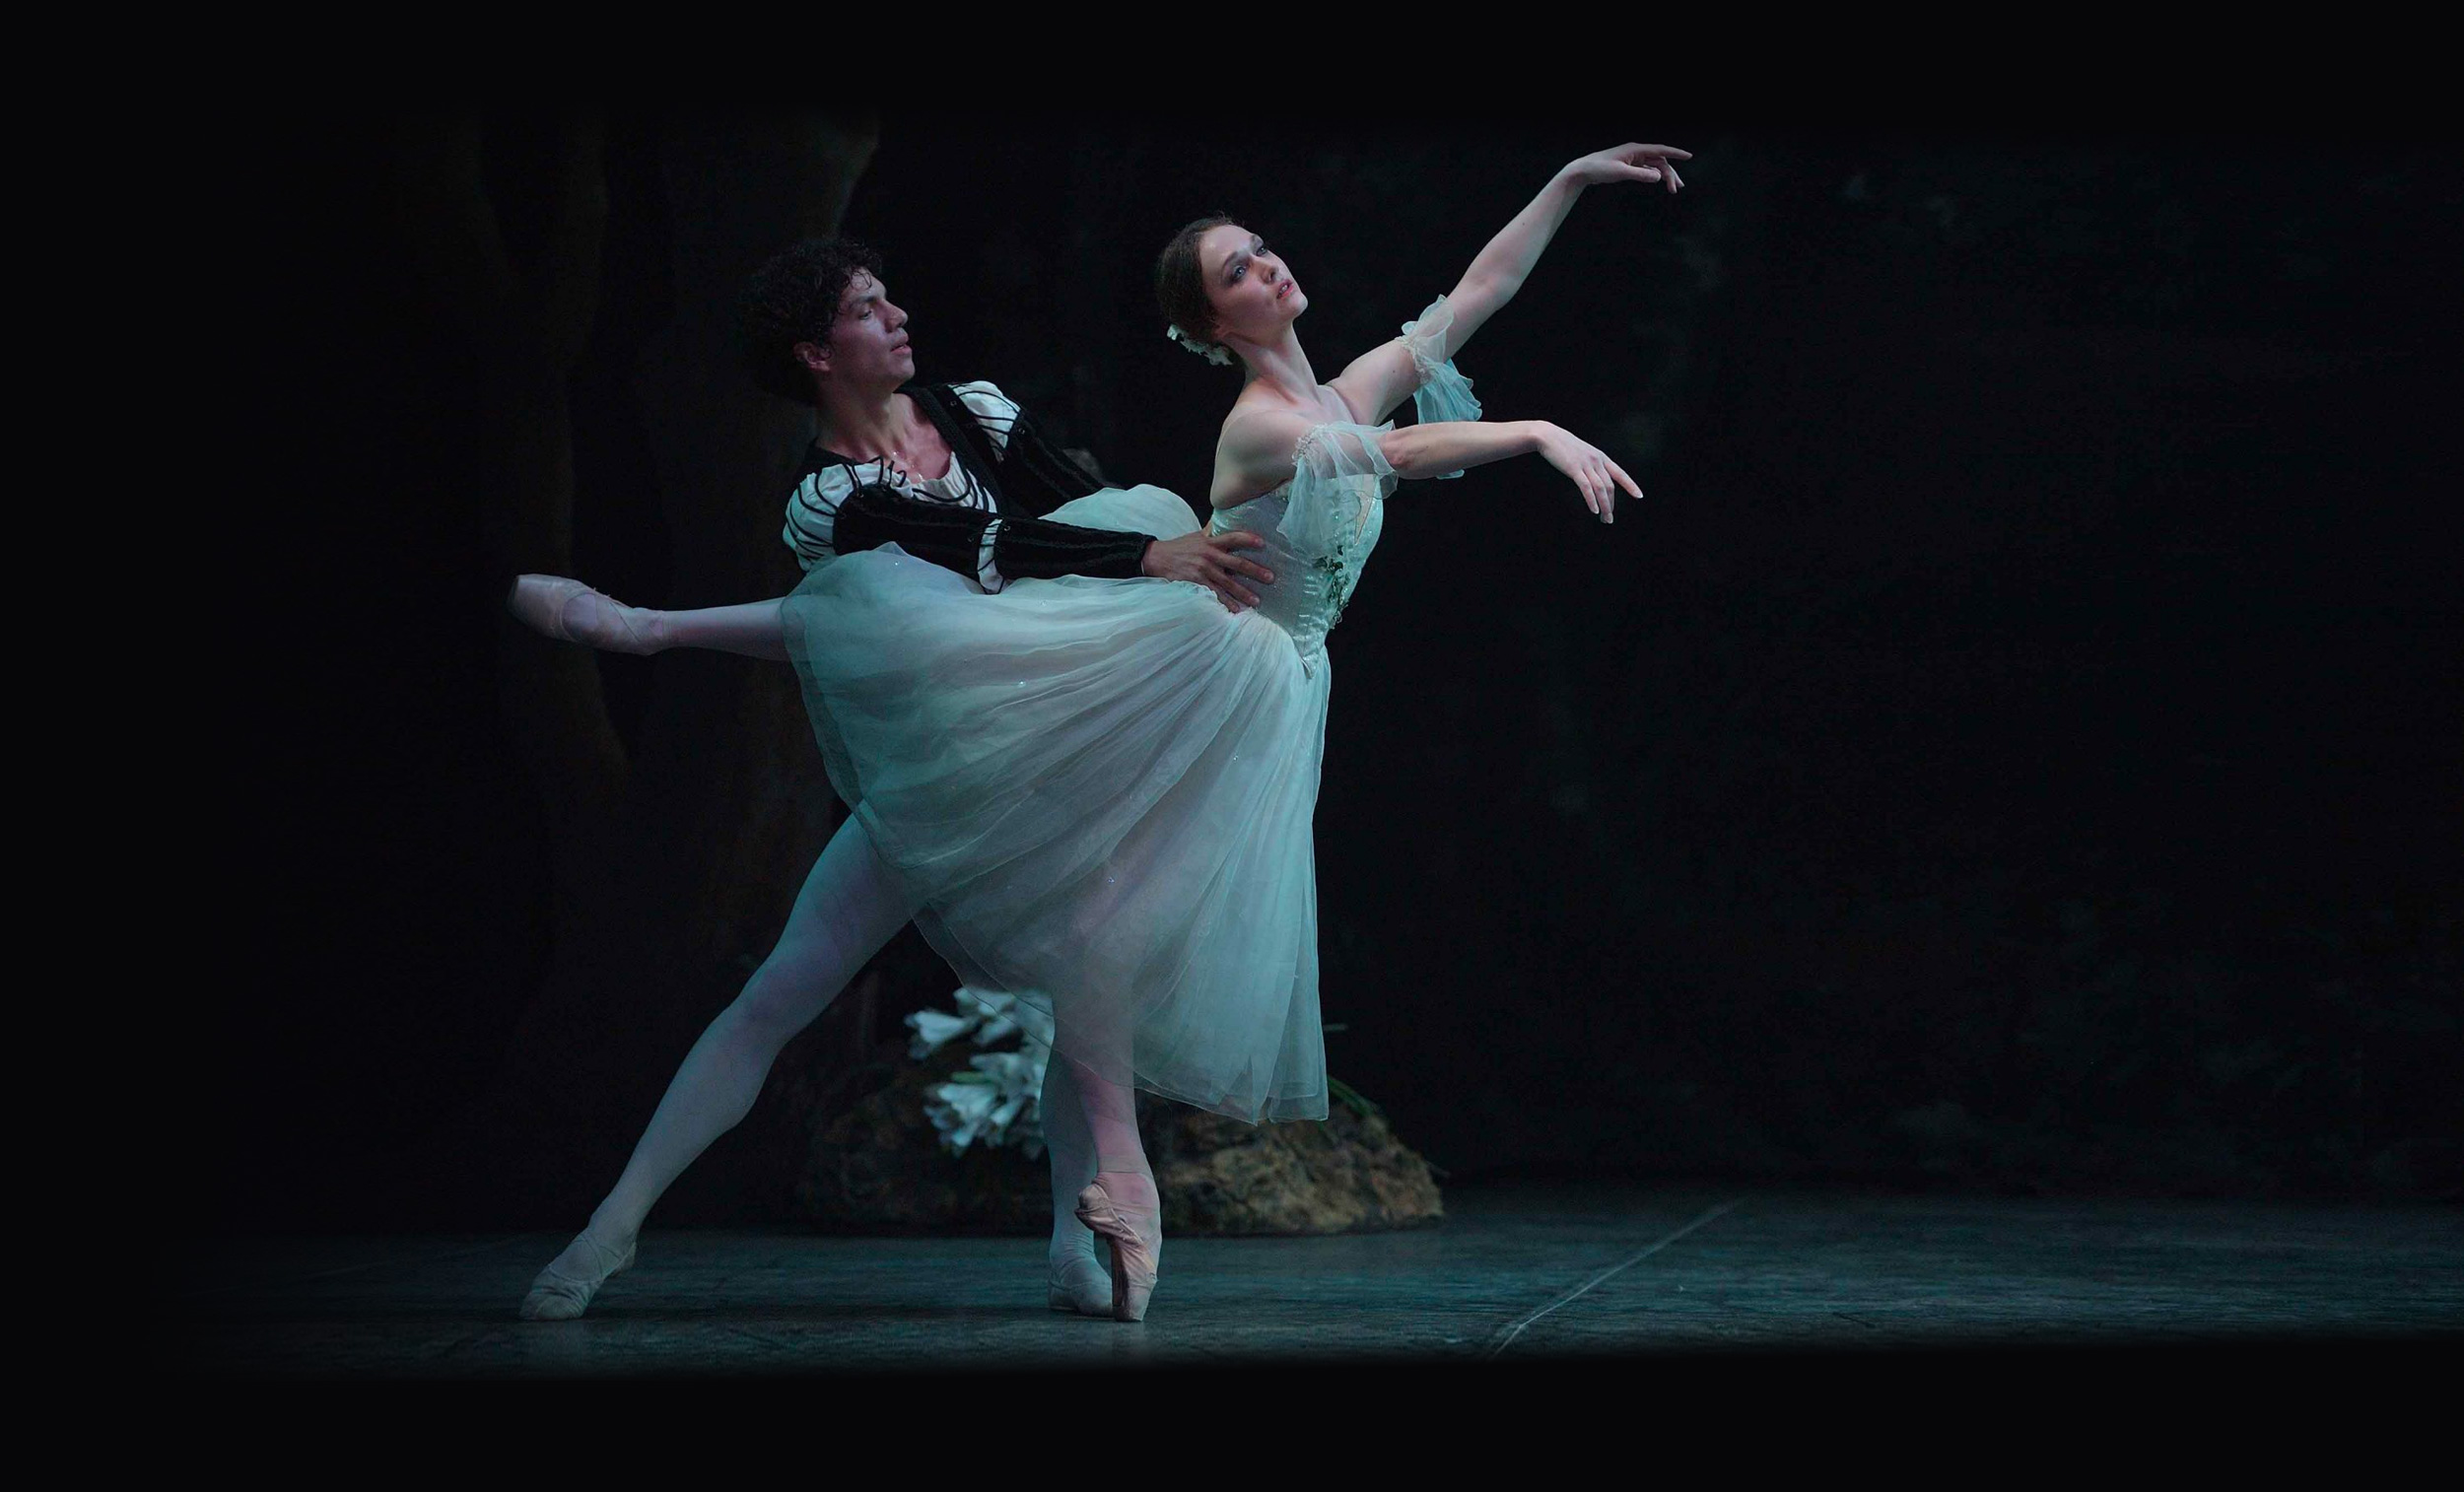 Jurgita-Dronina-as-Giselle-and-Isaac-Hernandez-as-Albrecht-in-Mary-Skeaping's-Giselle-(c)-Laurent-Liotardo